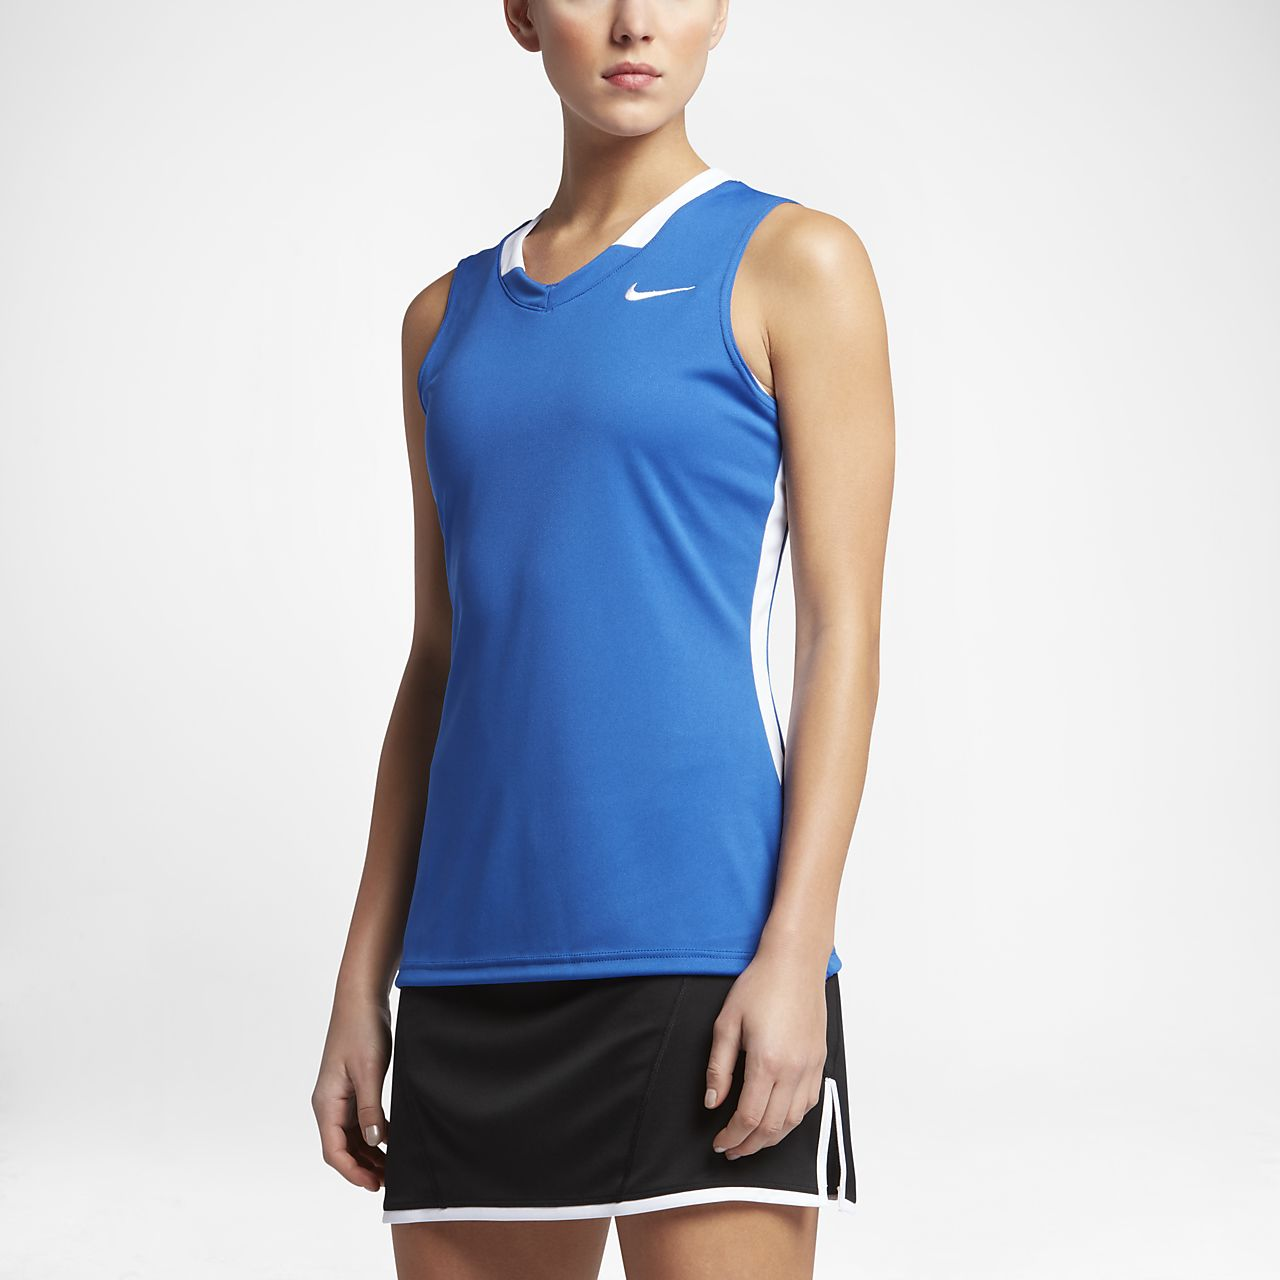 ... Nike Face-Off Stock Women's Lacrosse Jersey